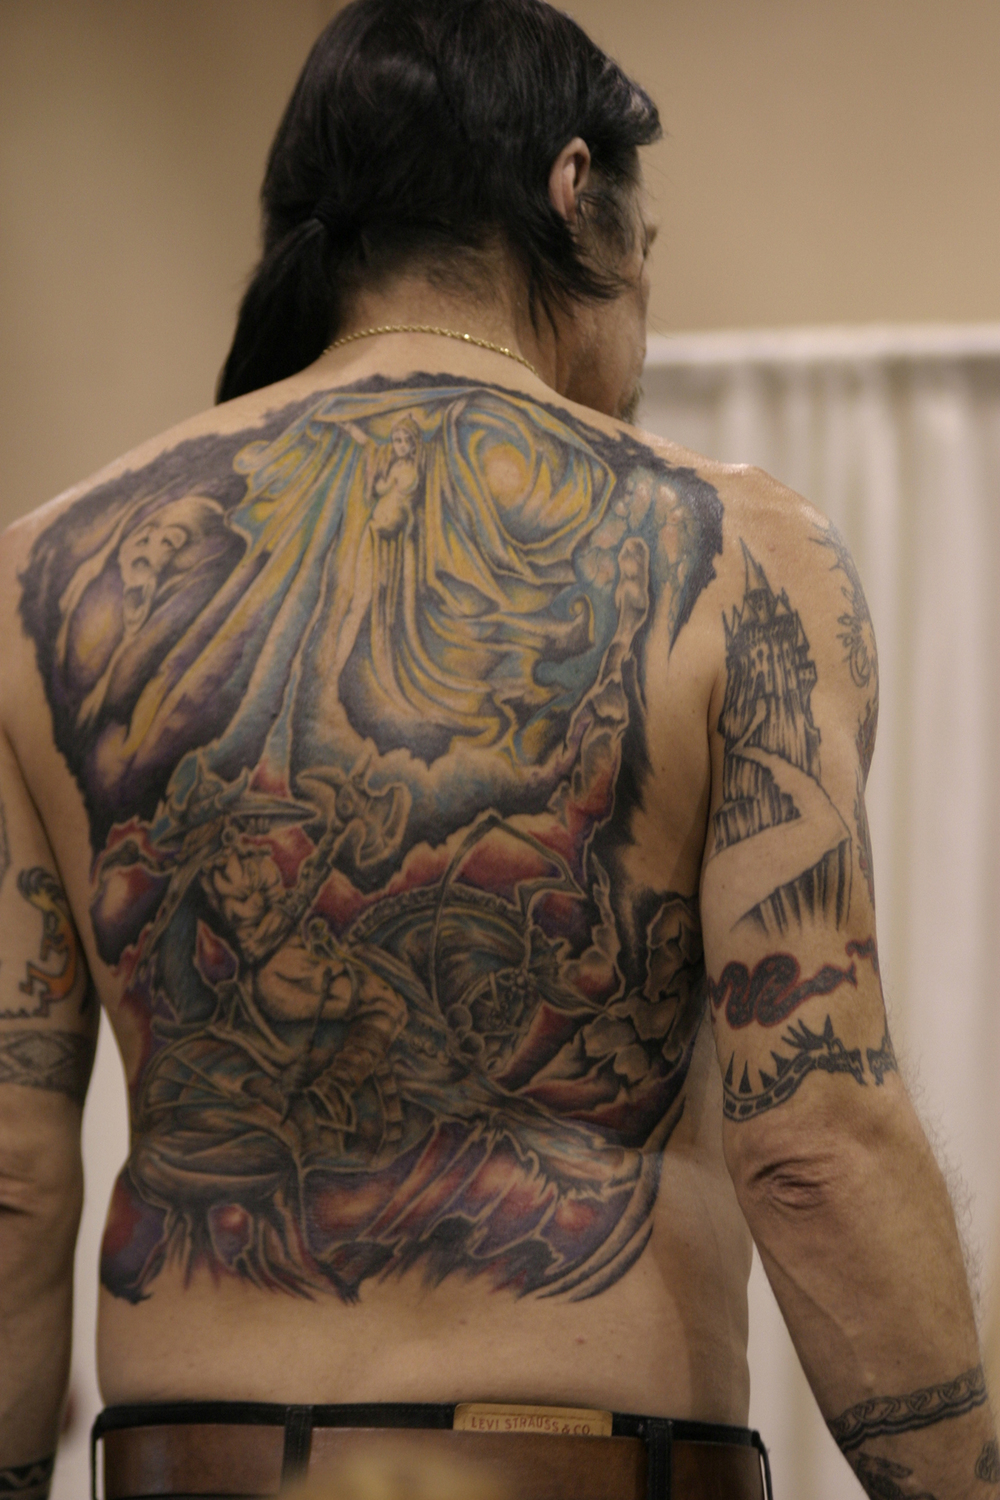 Tattoo_Expo031.JPG